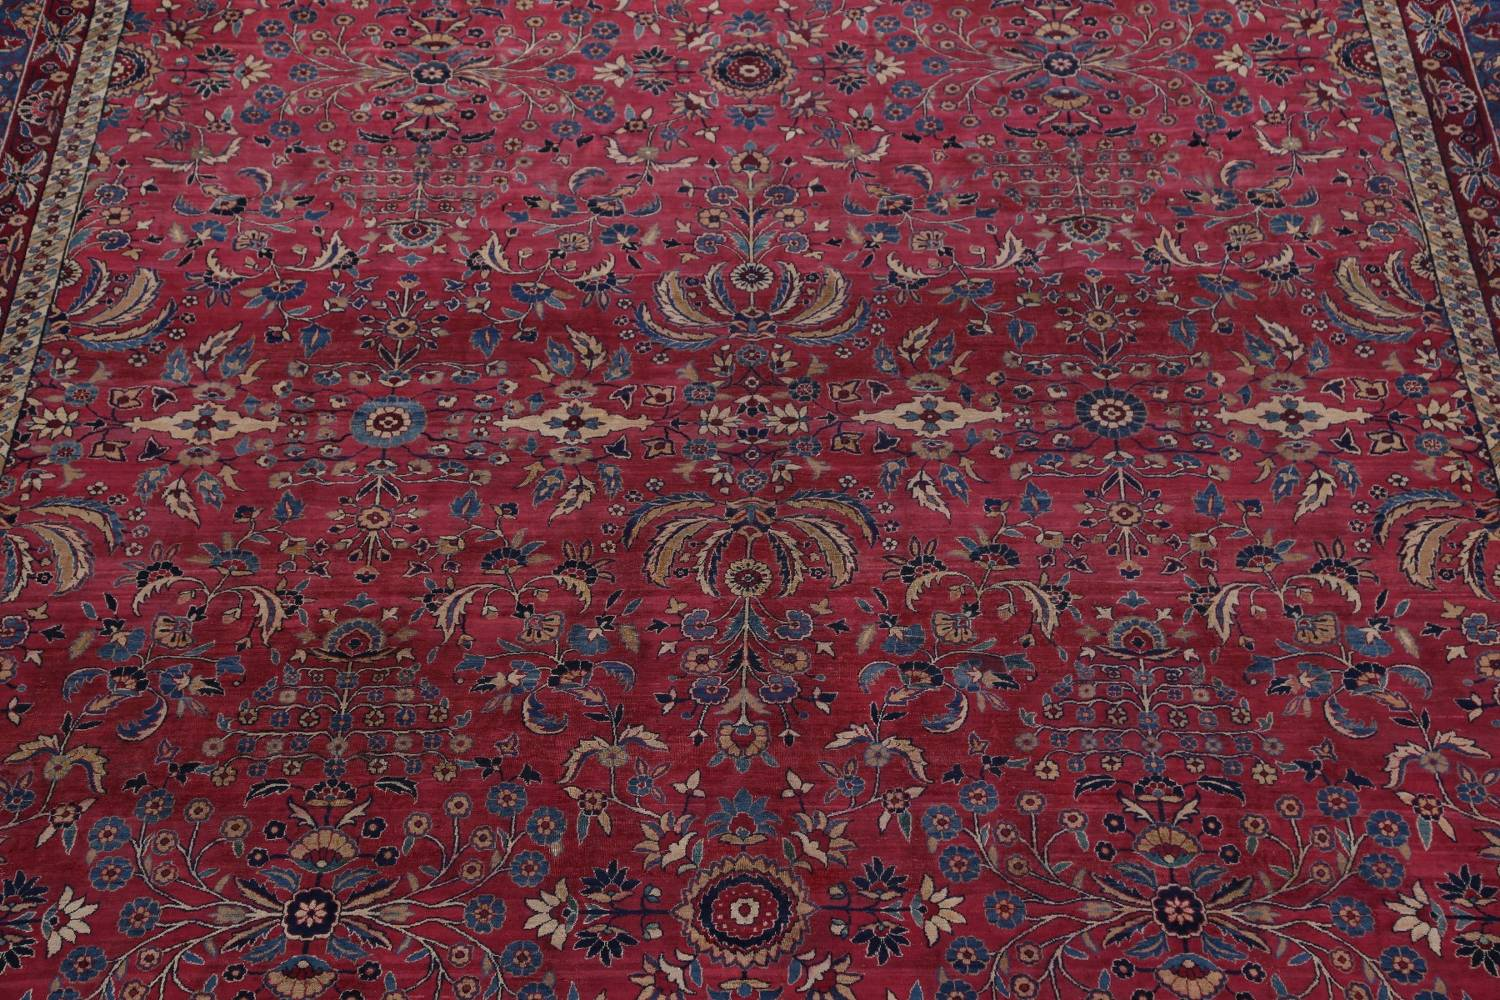 Pre-1900 Antique Floral Sultanabad Persian Hand-Knotted 12x18 Wool Rug image 4